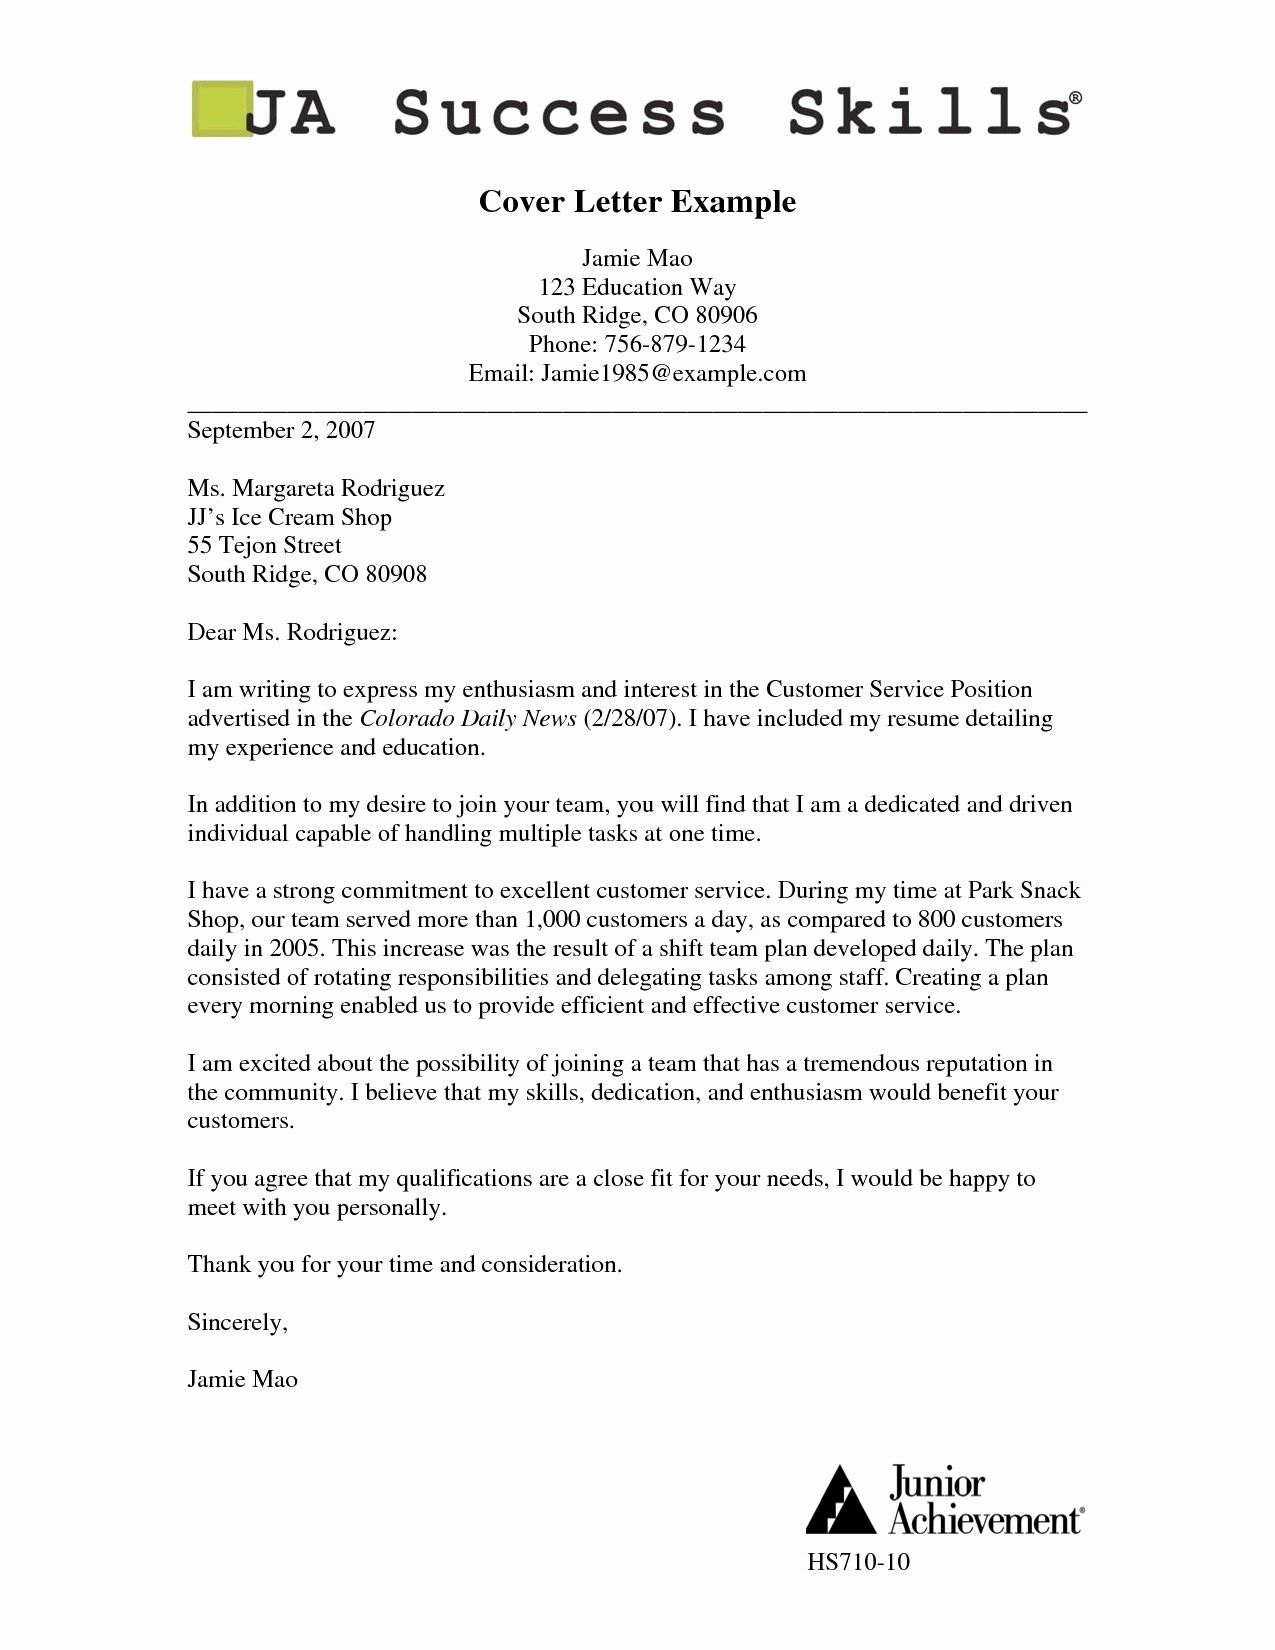 Education Cover Letter Template - Education Cover Letter Sample Best Cover Letter Sample for Resume